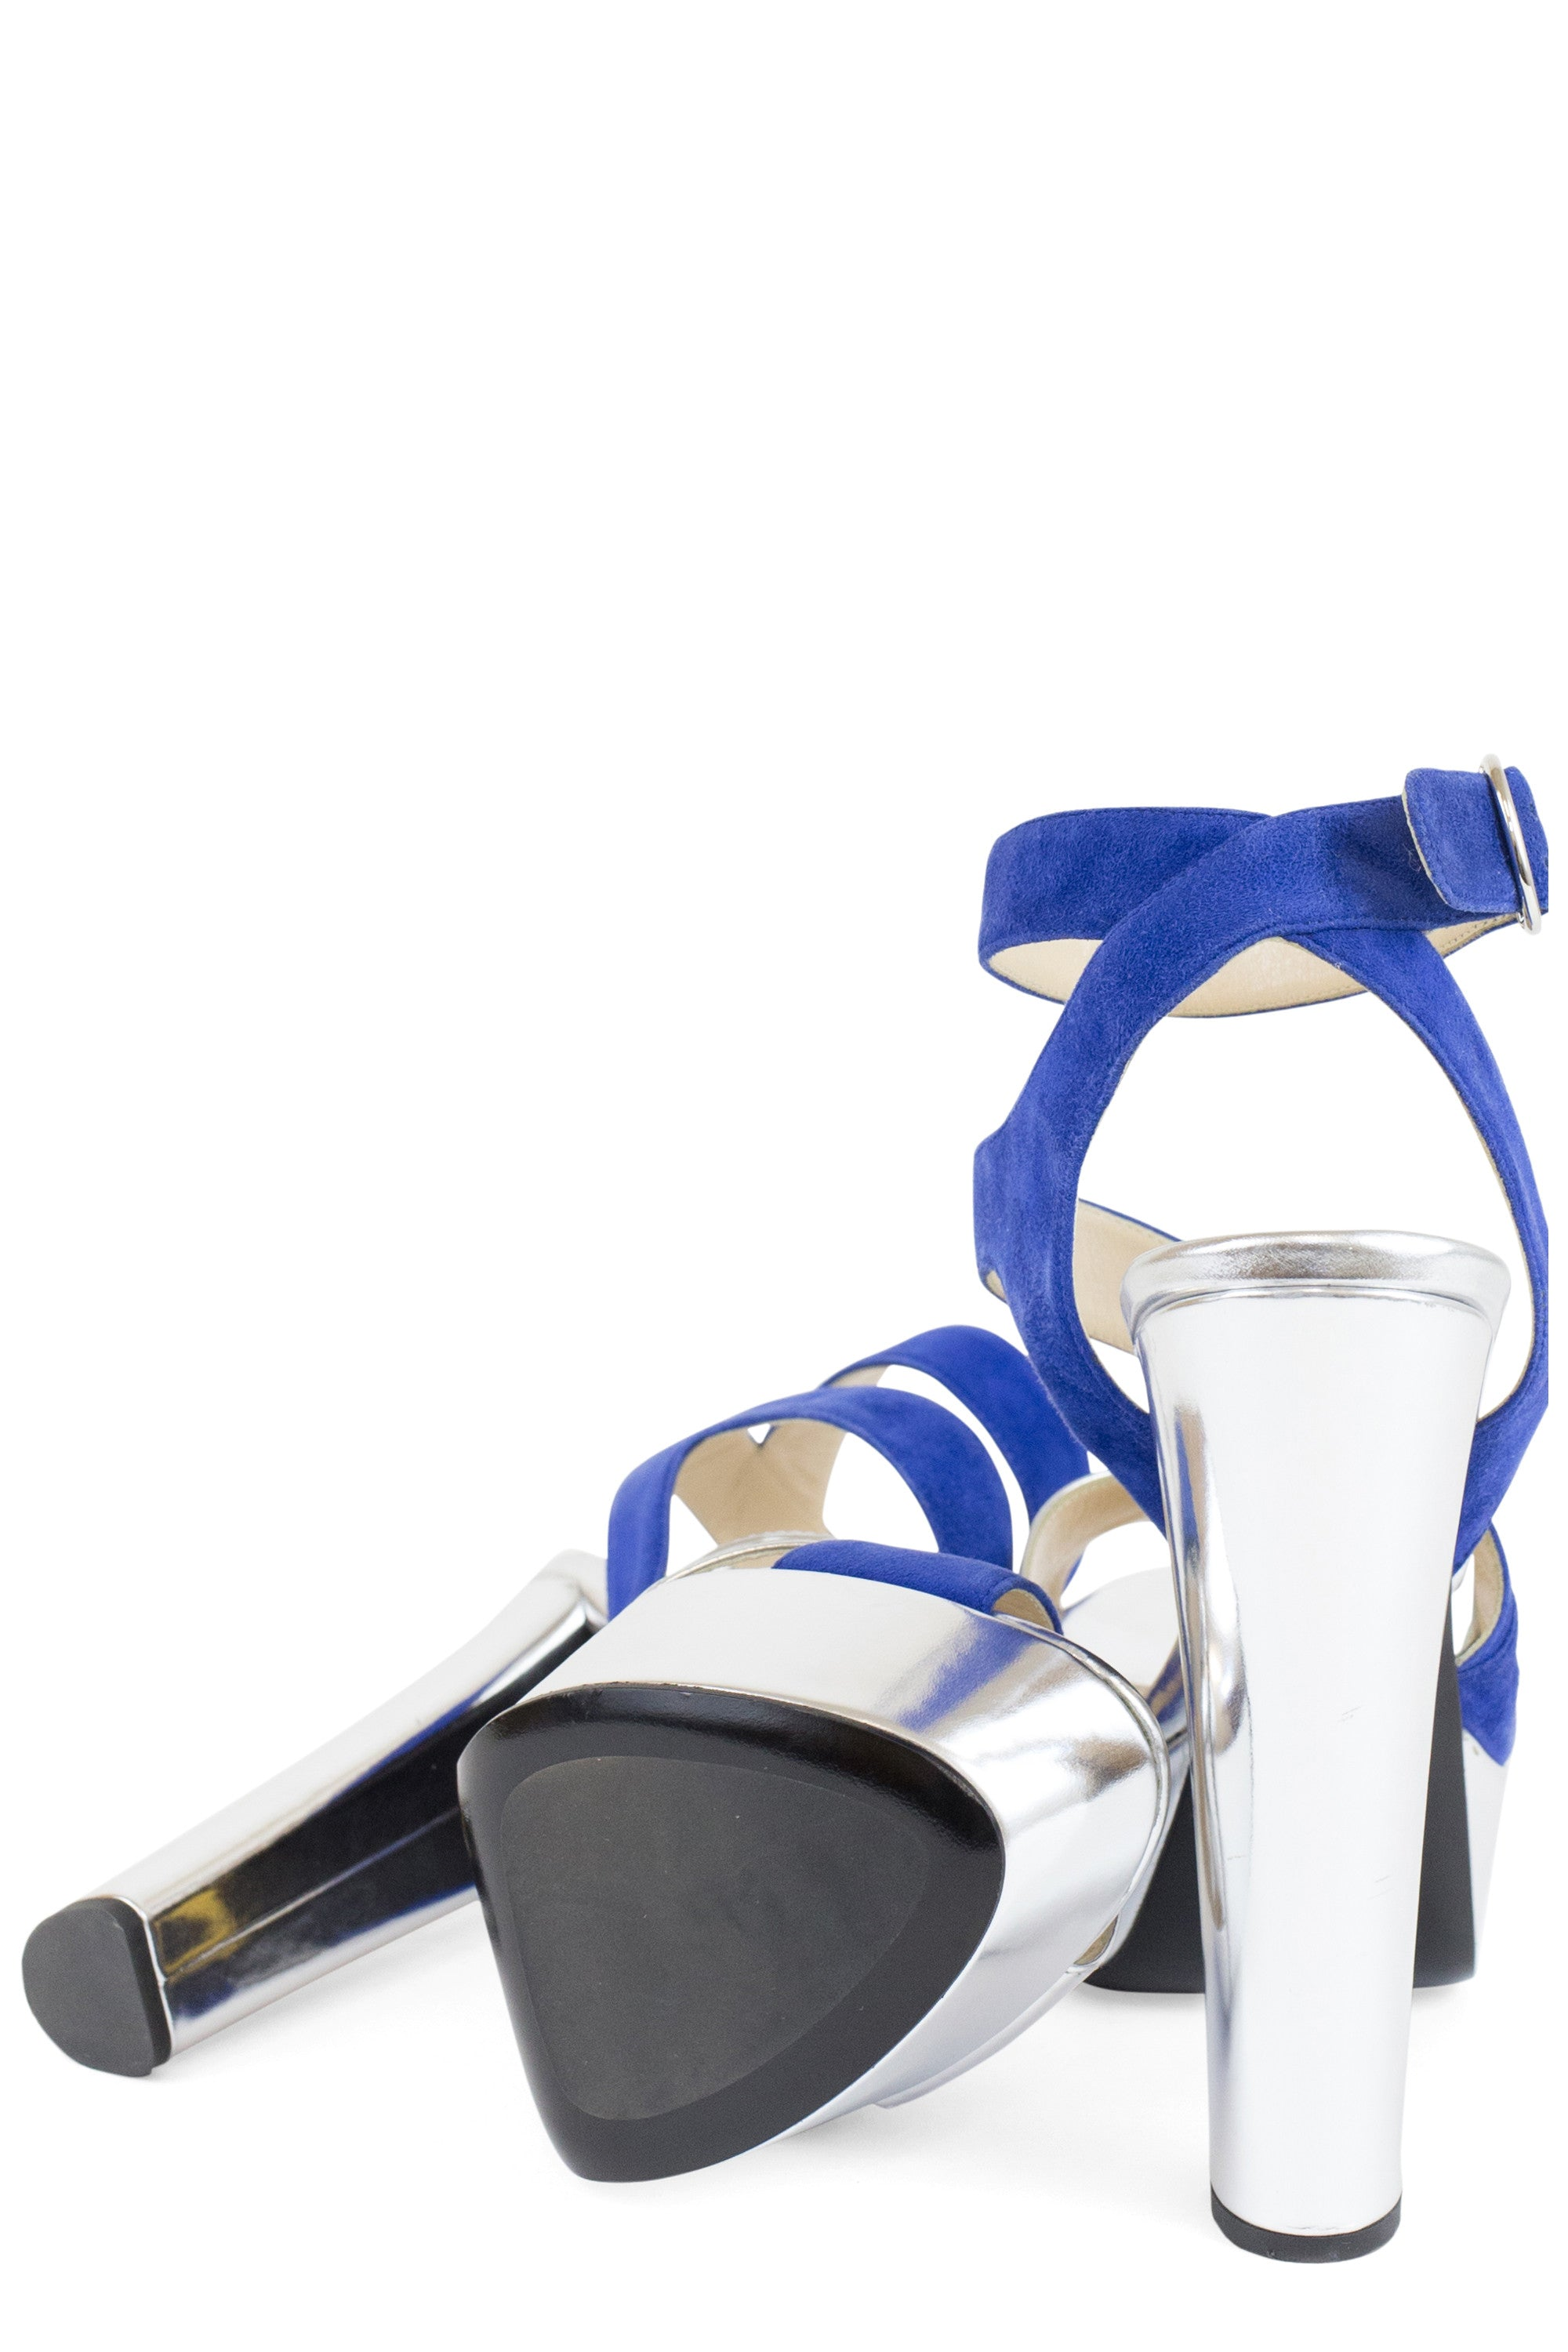 Treasure No. 7 - PRADA Sandals